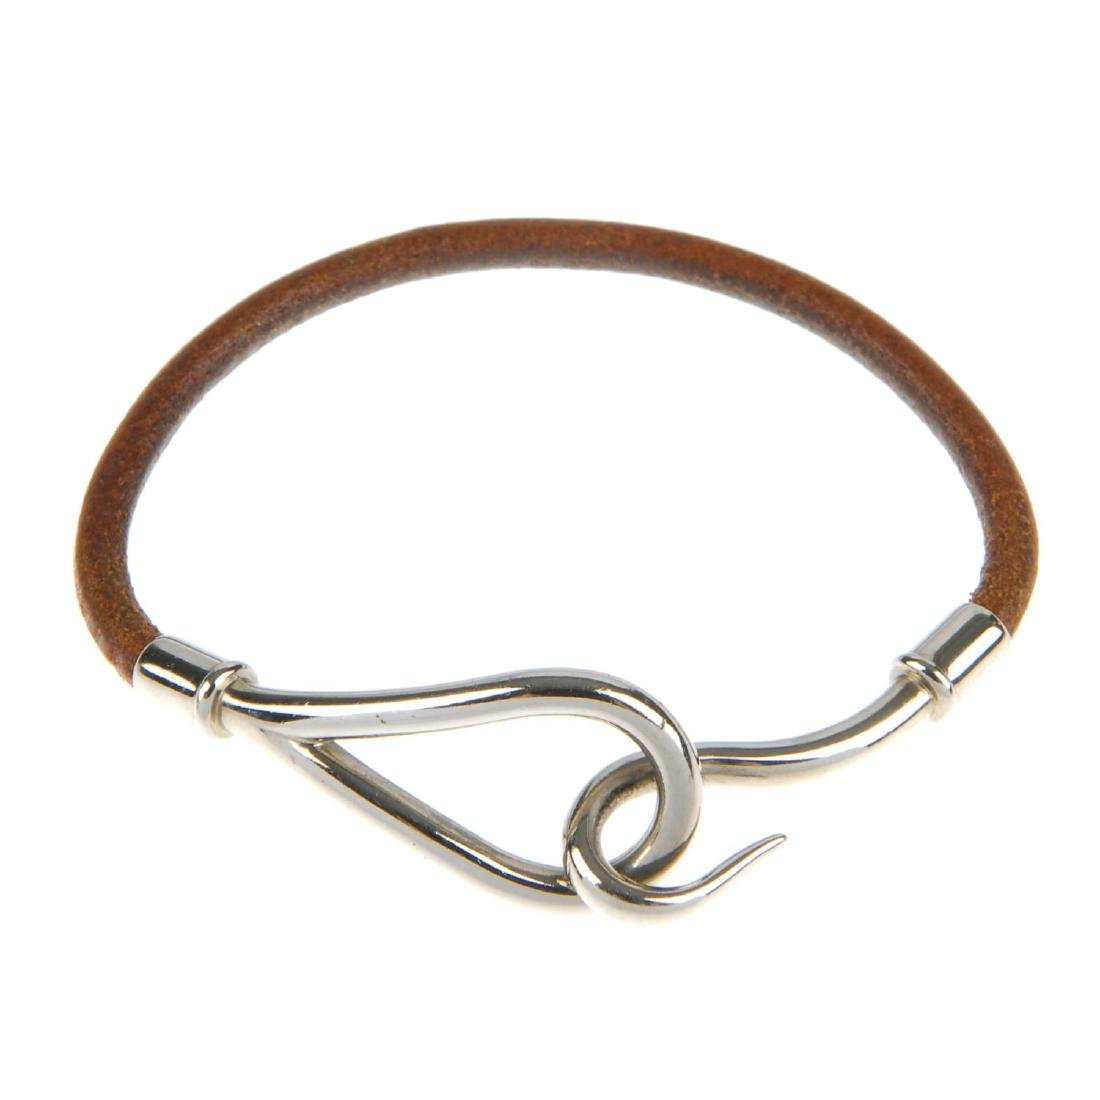 HERMÈS - a leather cord bracelet. The brown leather